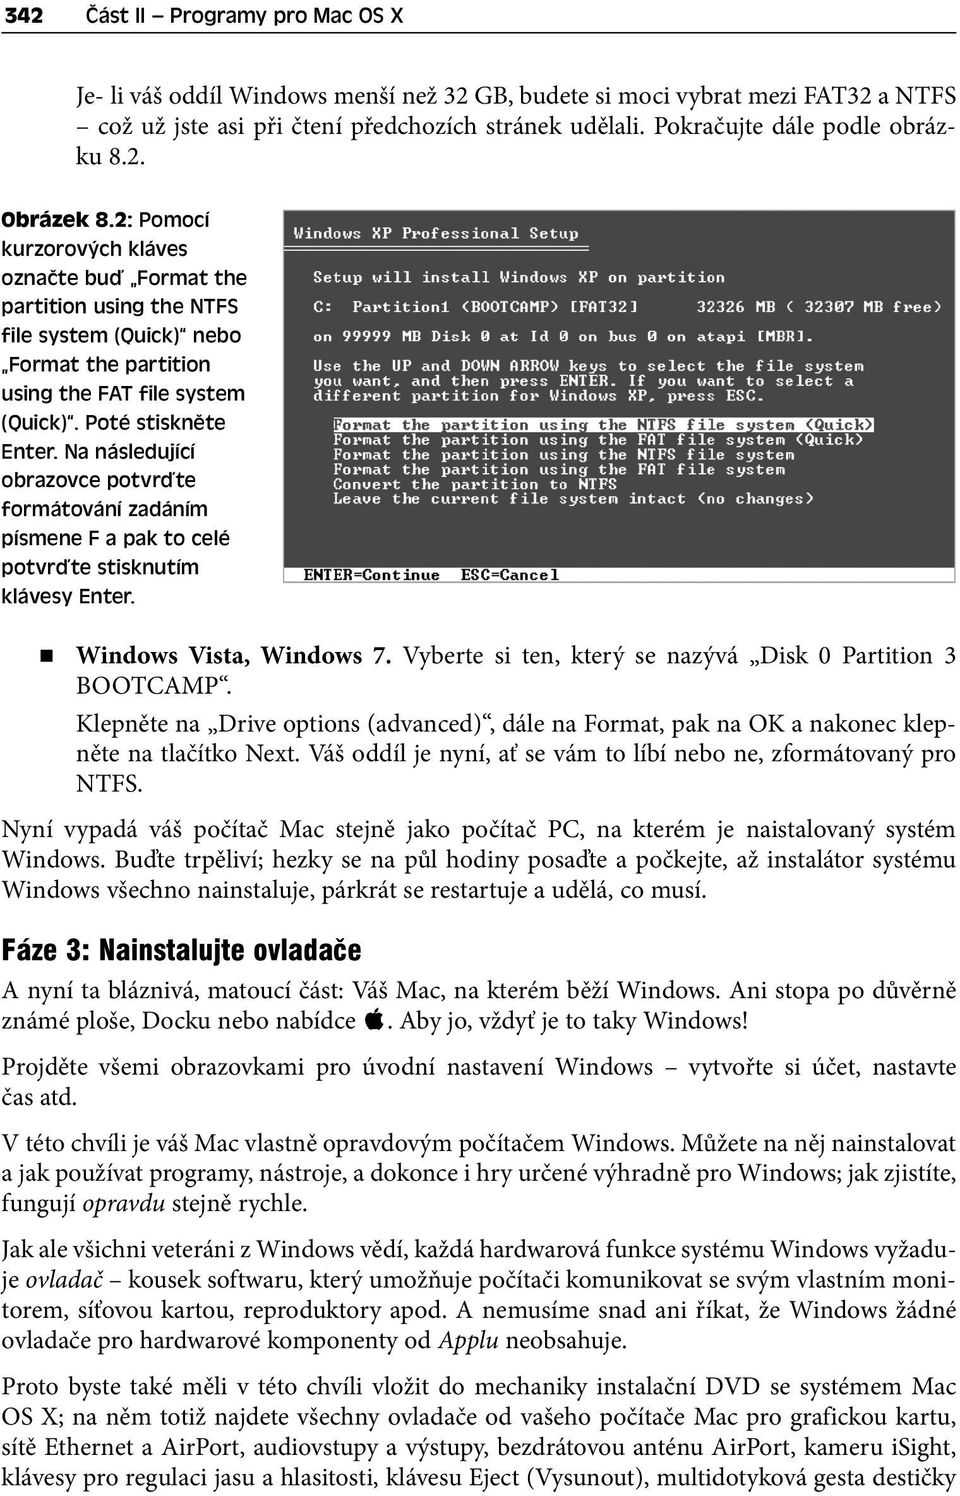 2: Pomocí kurzorových kláves označte buď Format the partition using the NTFS file system (Quick) nebo Format the partition using the FAT file system (Quick). Poté stiskněte Enter.